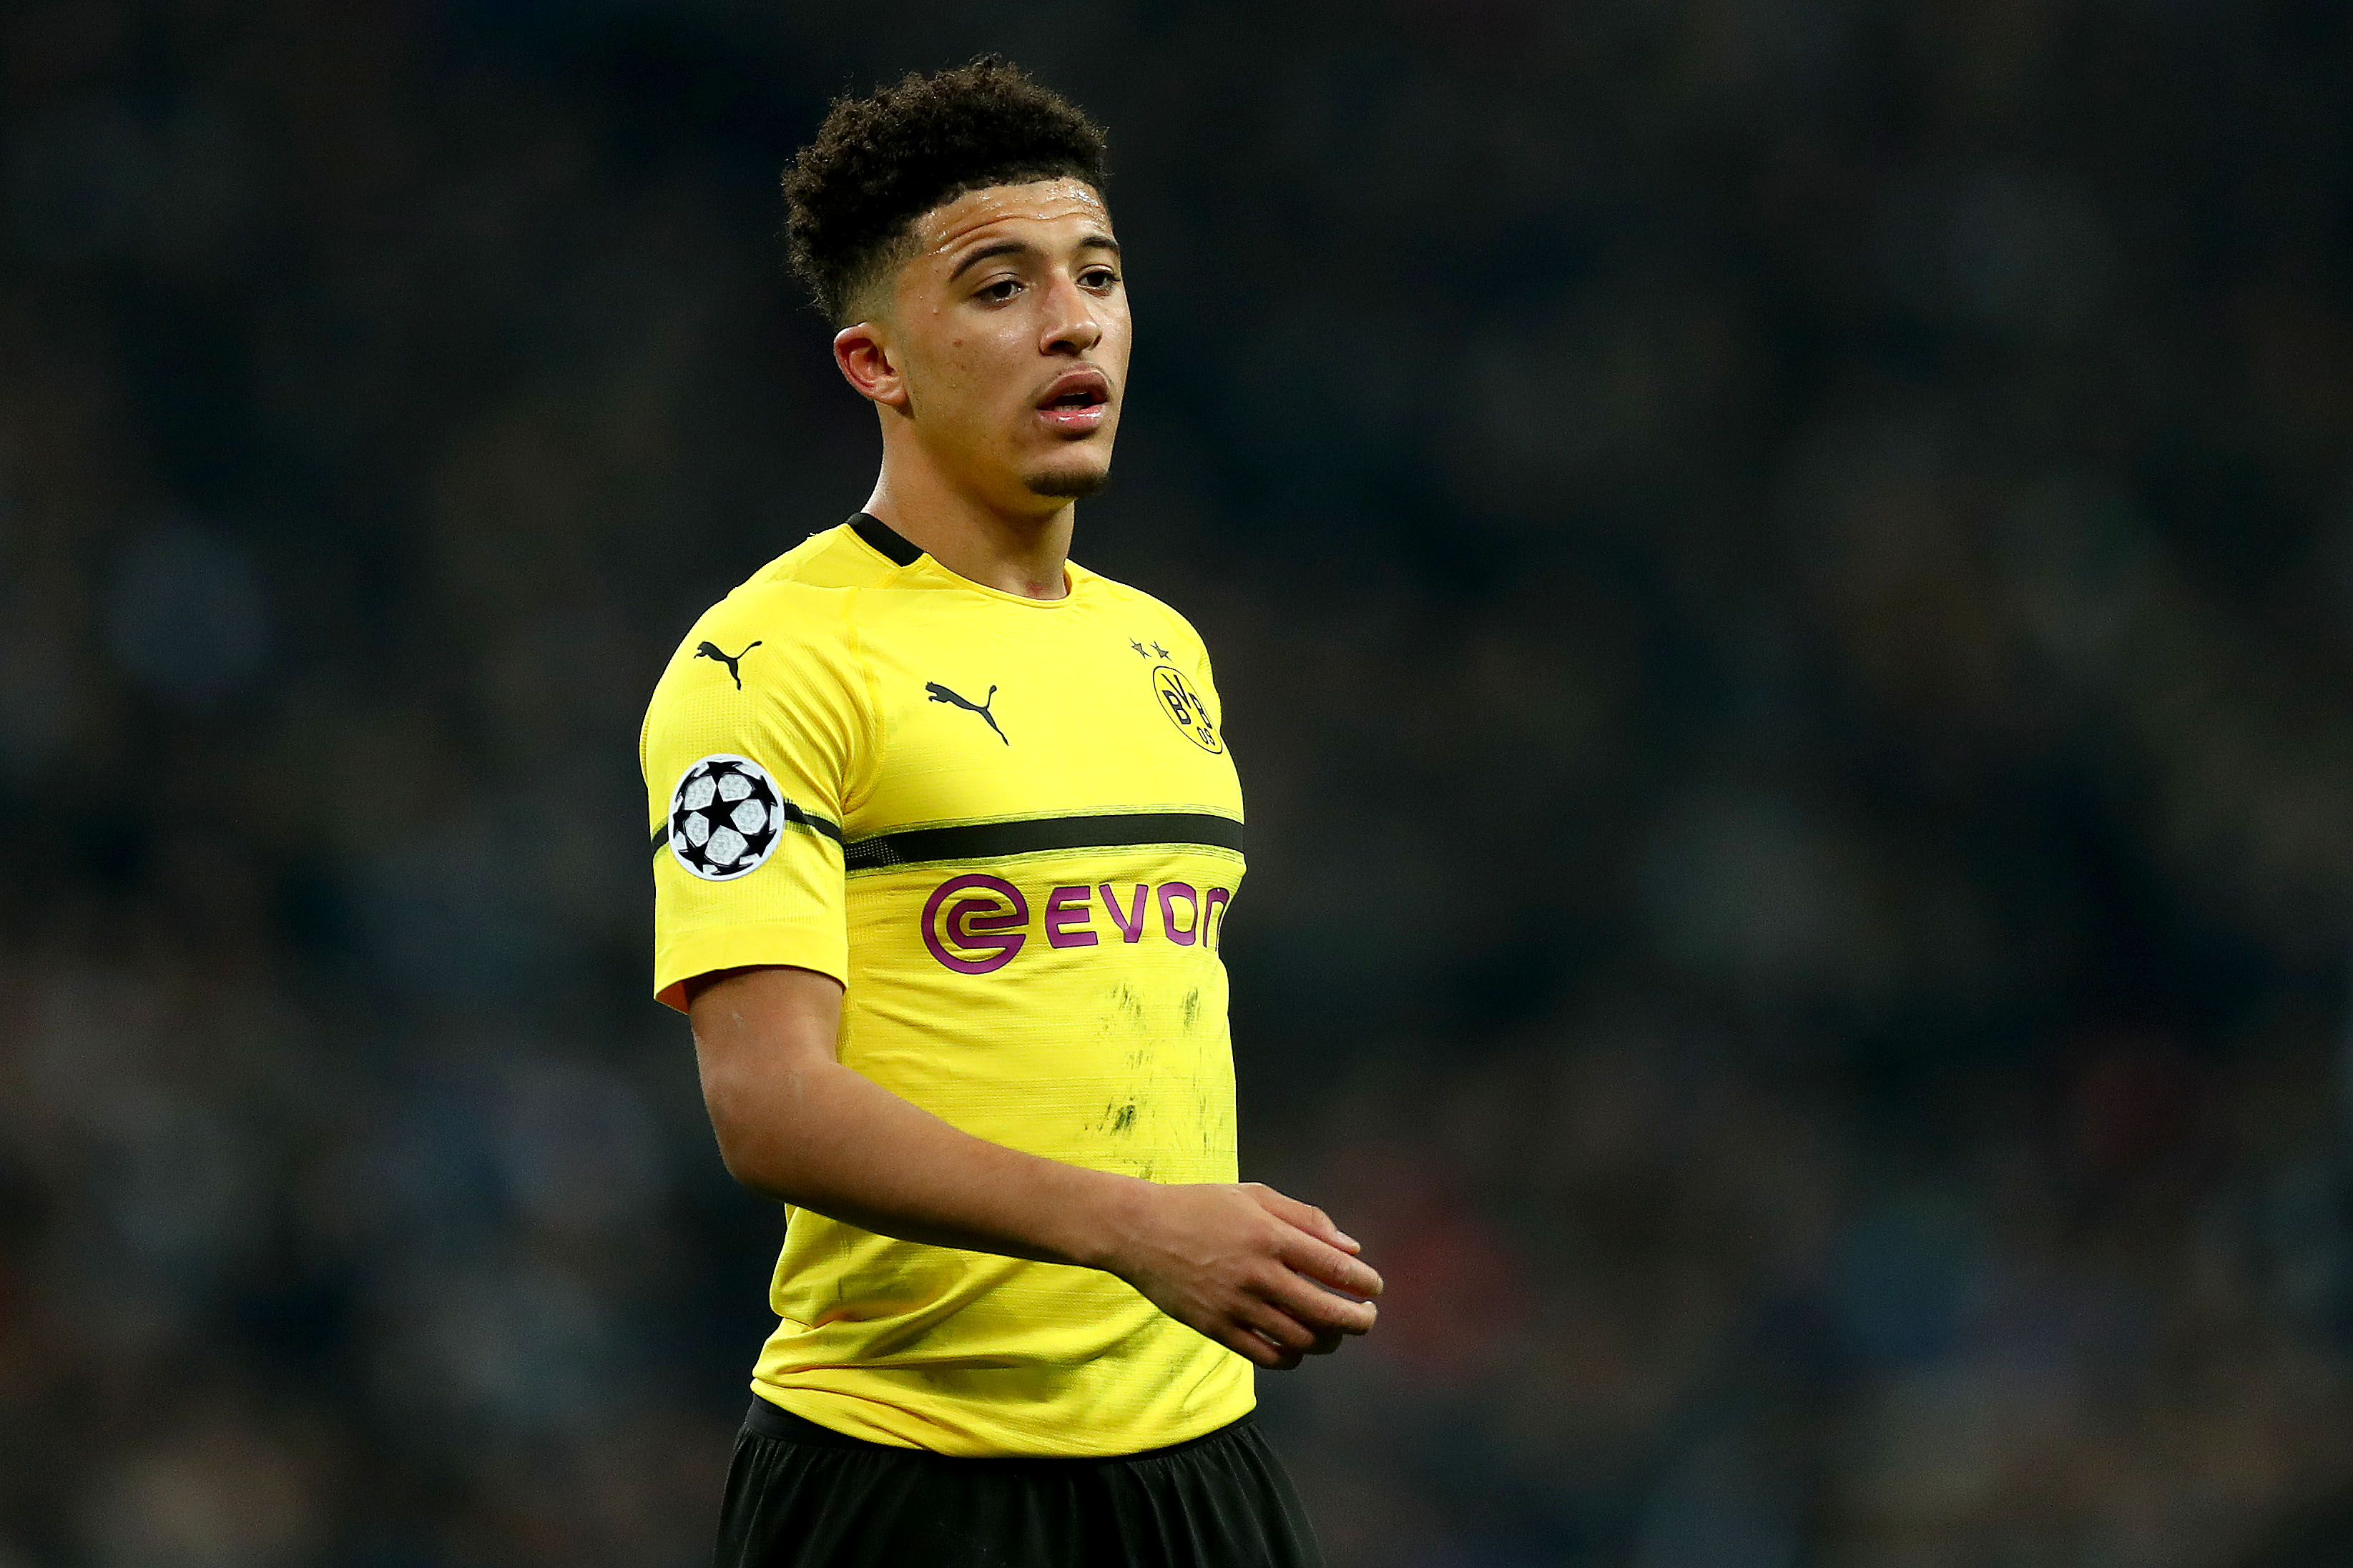 Predicted Borussia Dortmund Lineup vs Bayern Munich - Sancho set to return